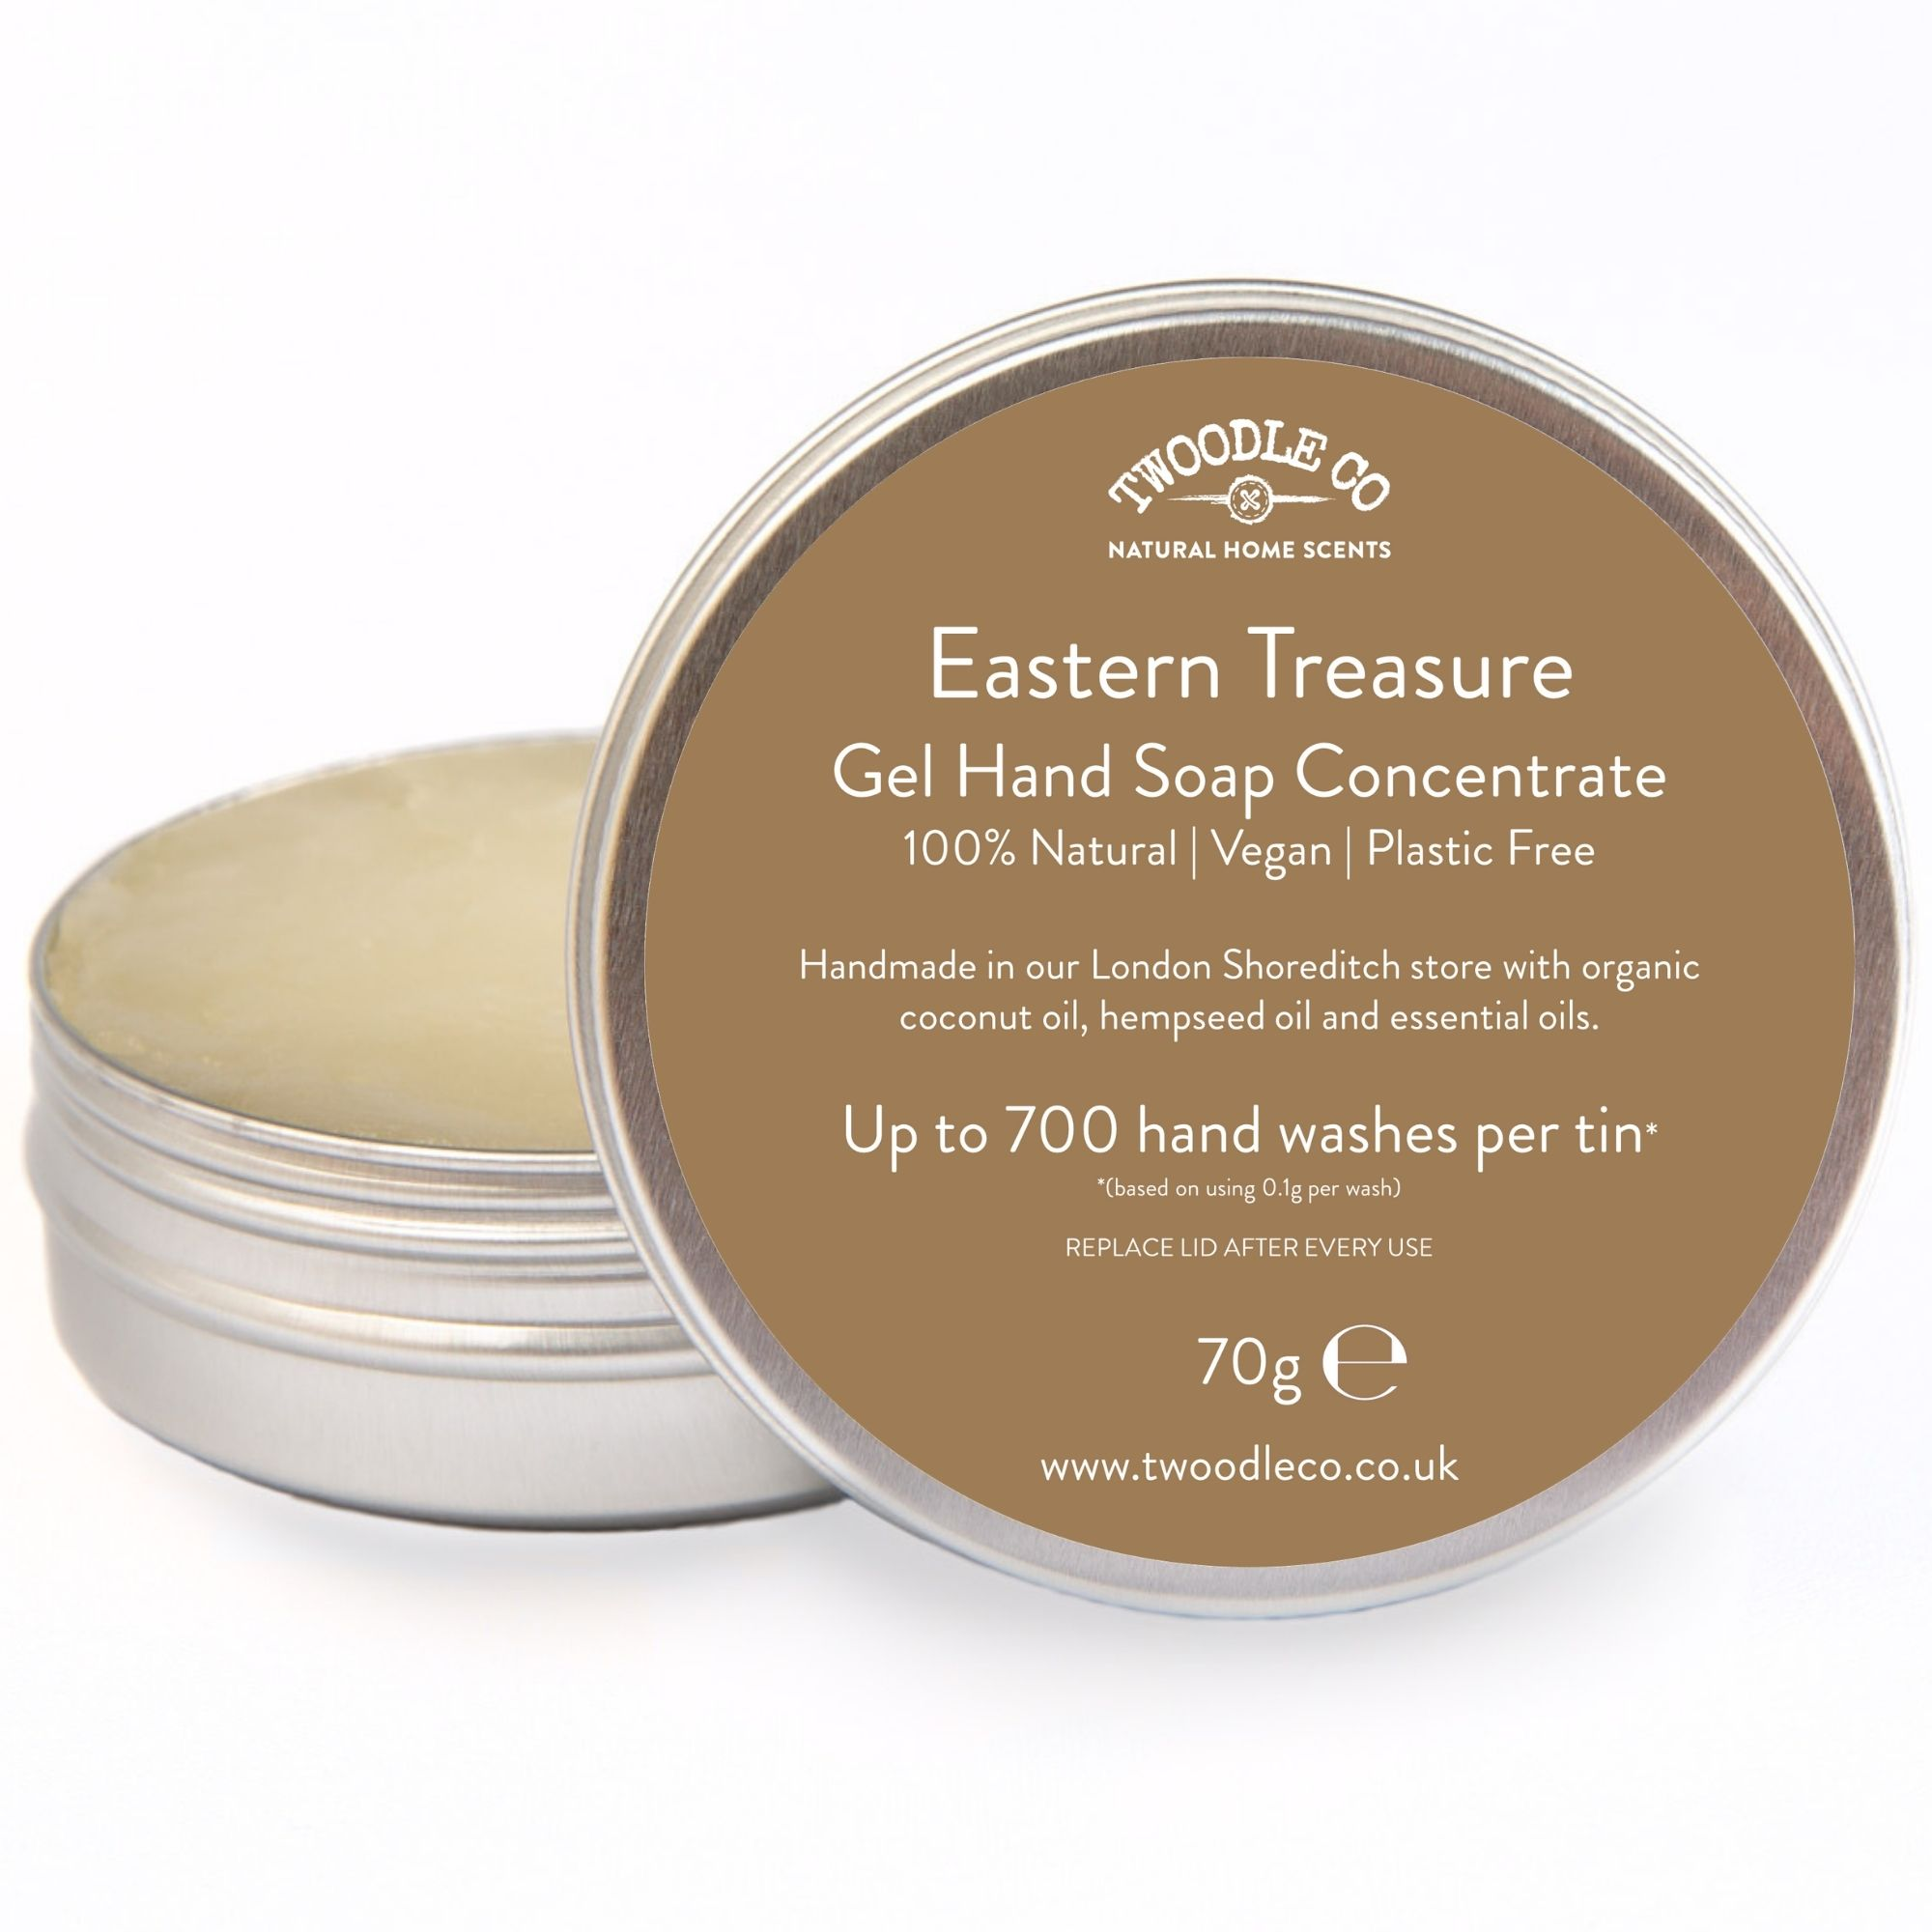 Eastern Treasure Gel Hand Soap Concentrate